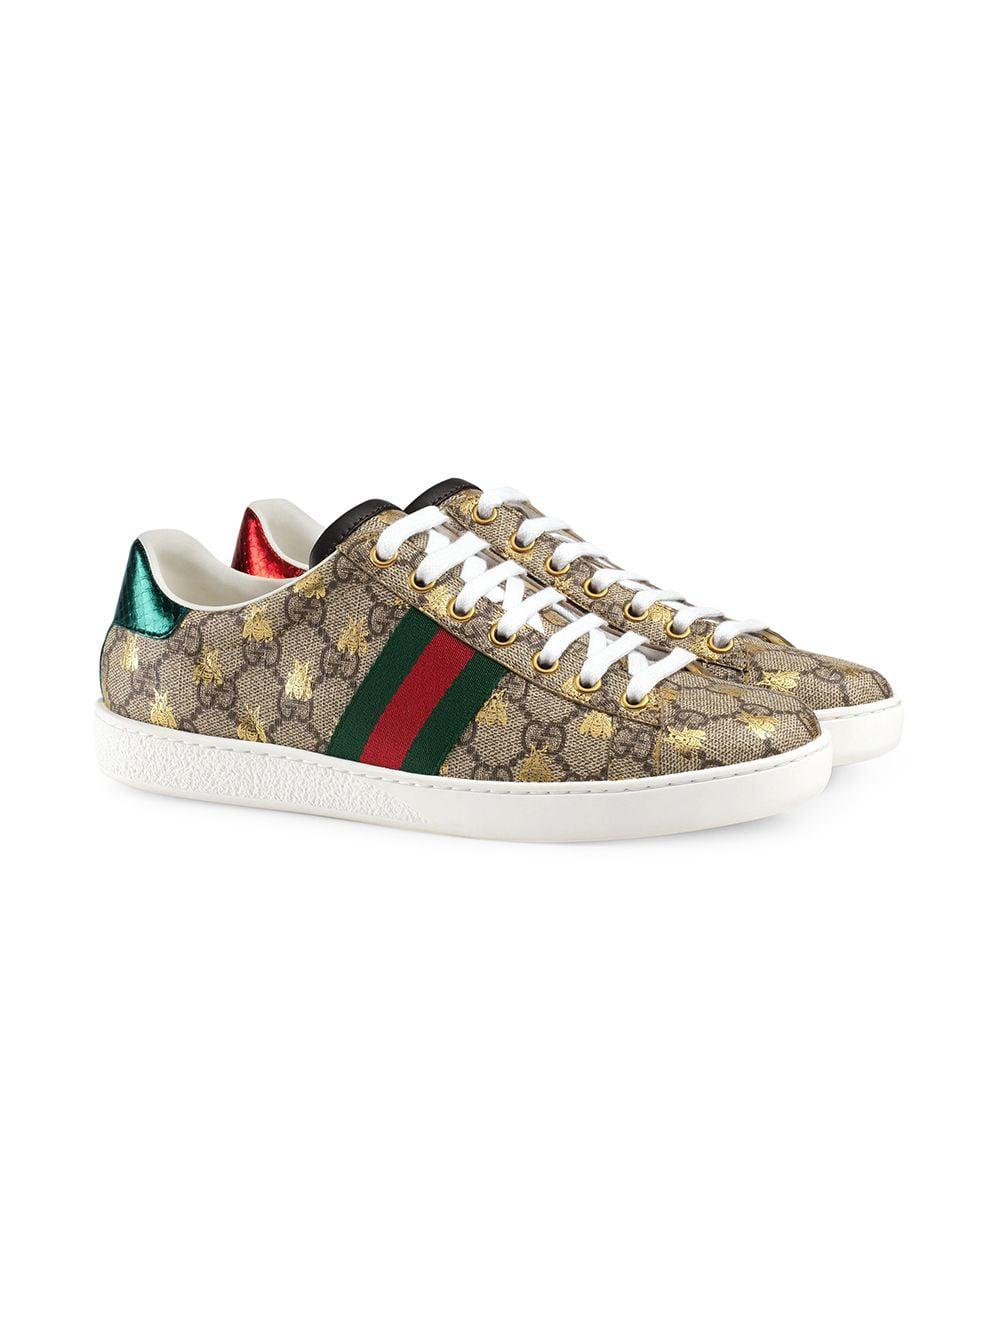 96a9fd433 Gucci Ace GG Supreme Sneaker With Bees - Lyst